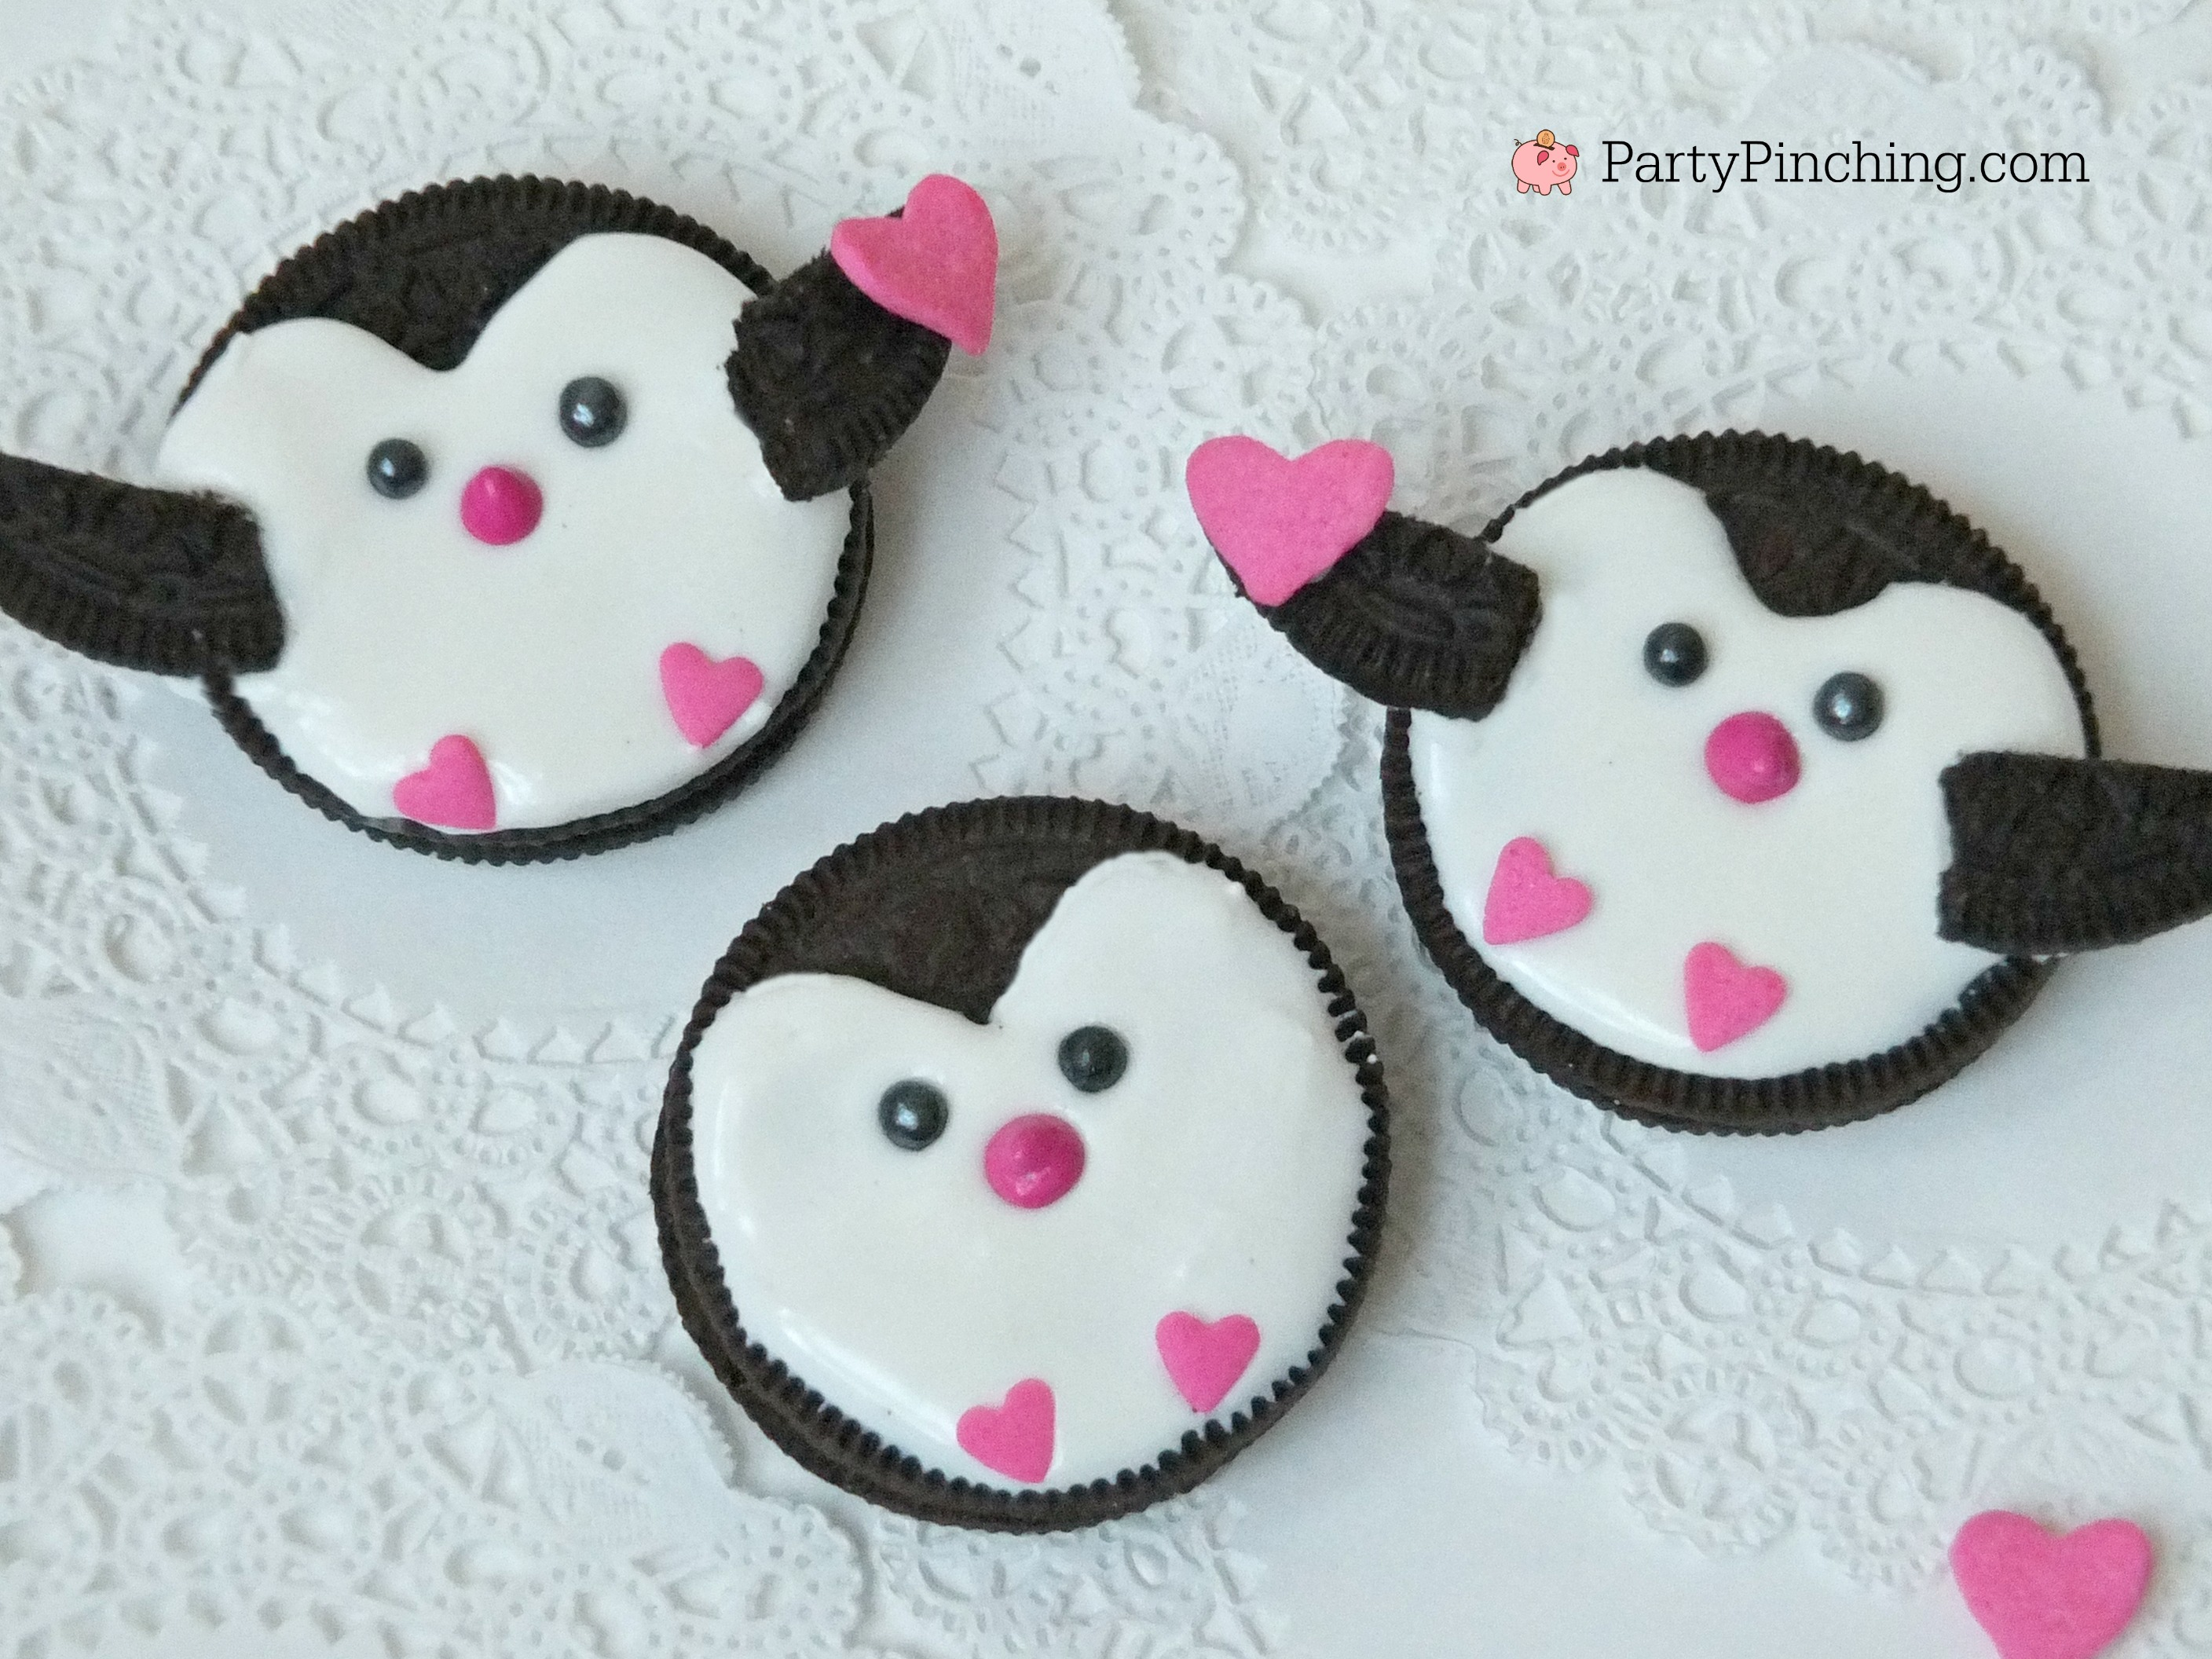 Penguin Oreo Cookies, cute Valentine's Day cookies, Oreo Penguin cookies, easy Valentine cookie ideas for kids, sweet treats for Valentine's day party class party food, fun food penguins